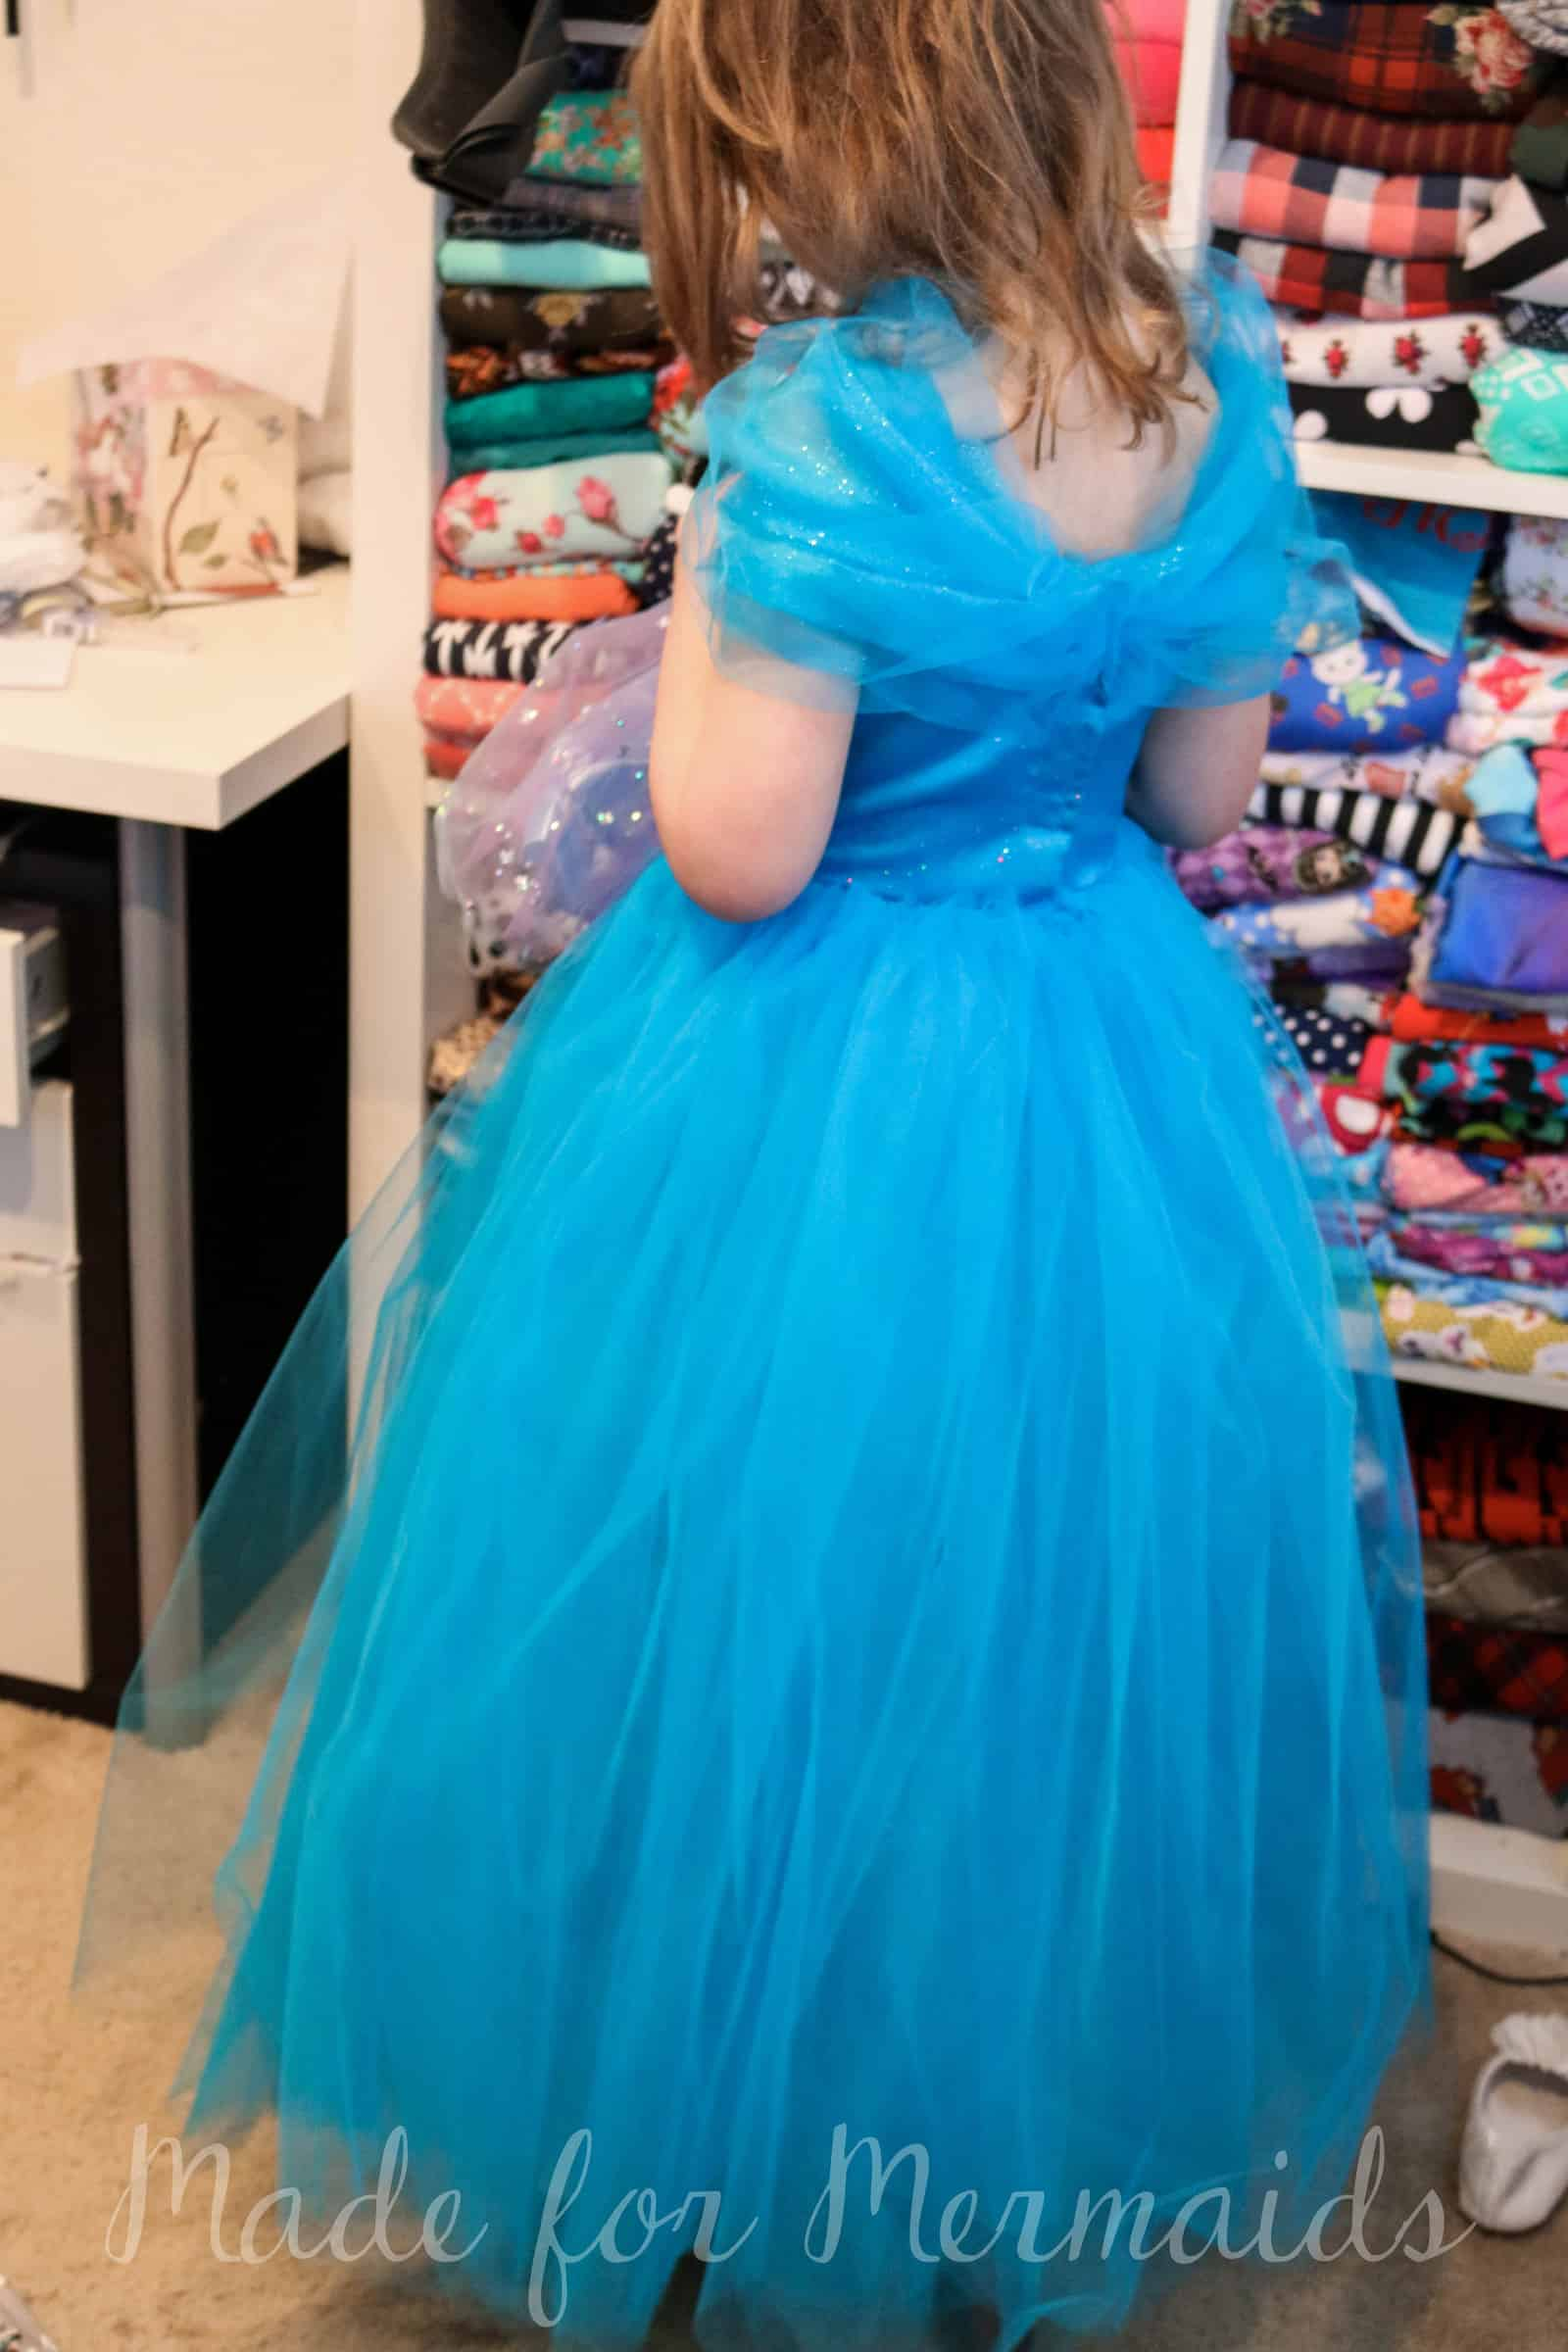 FREE size 5 New Cinderella Gown Pattern ⋆ Made for Mermaids